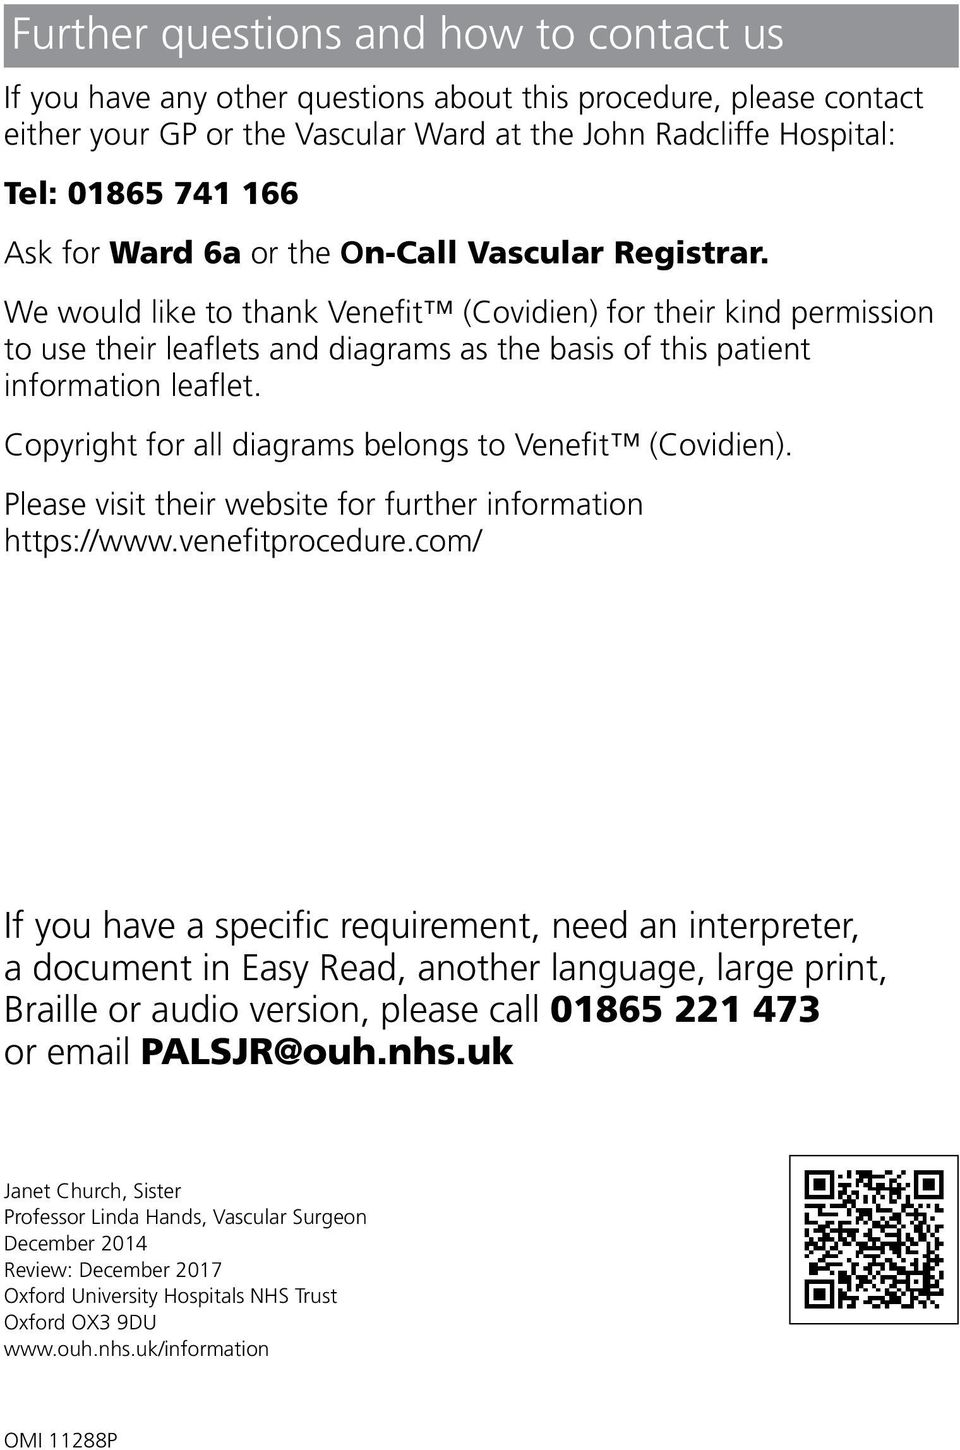 Copyright for all diagrams belongs to Venefit (Covidien). Please visit their website for further information https://www.venefitprocedure.